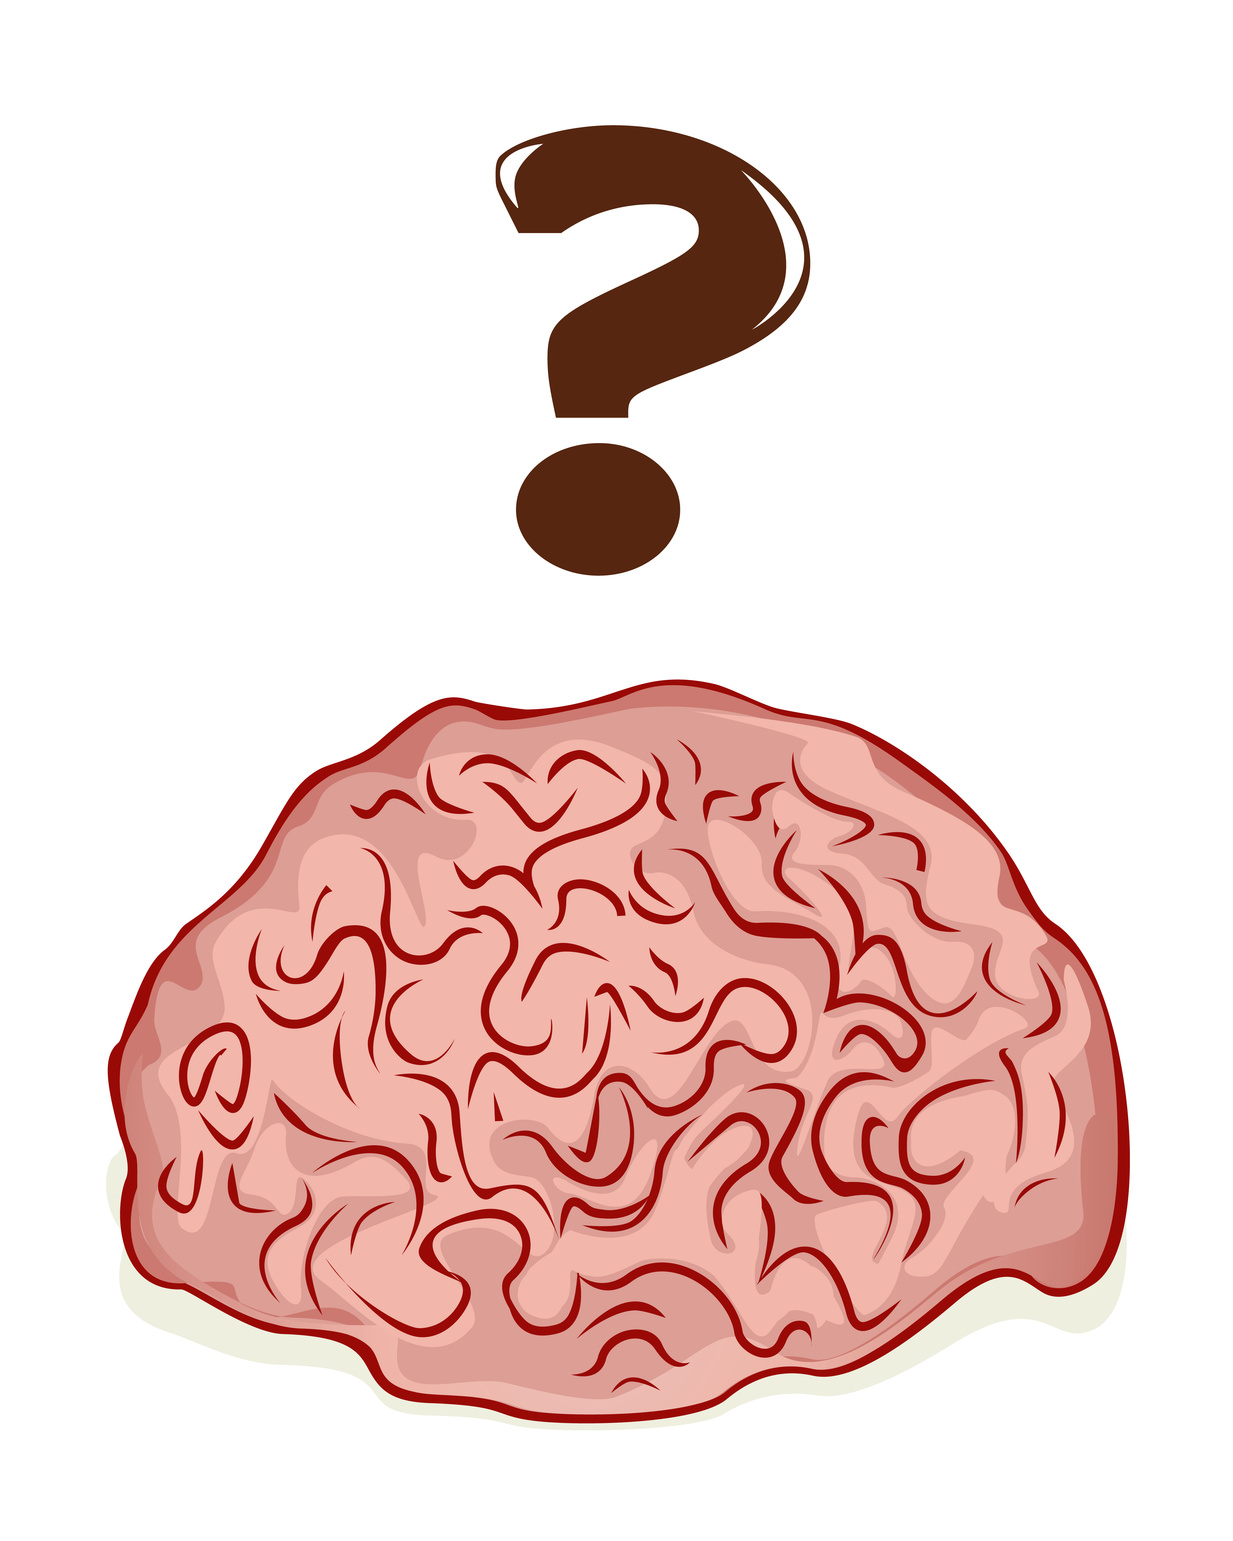 Brain and a question mark